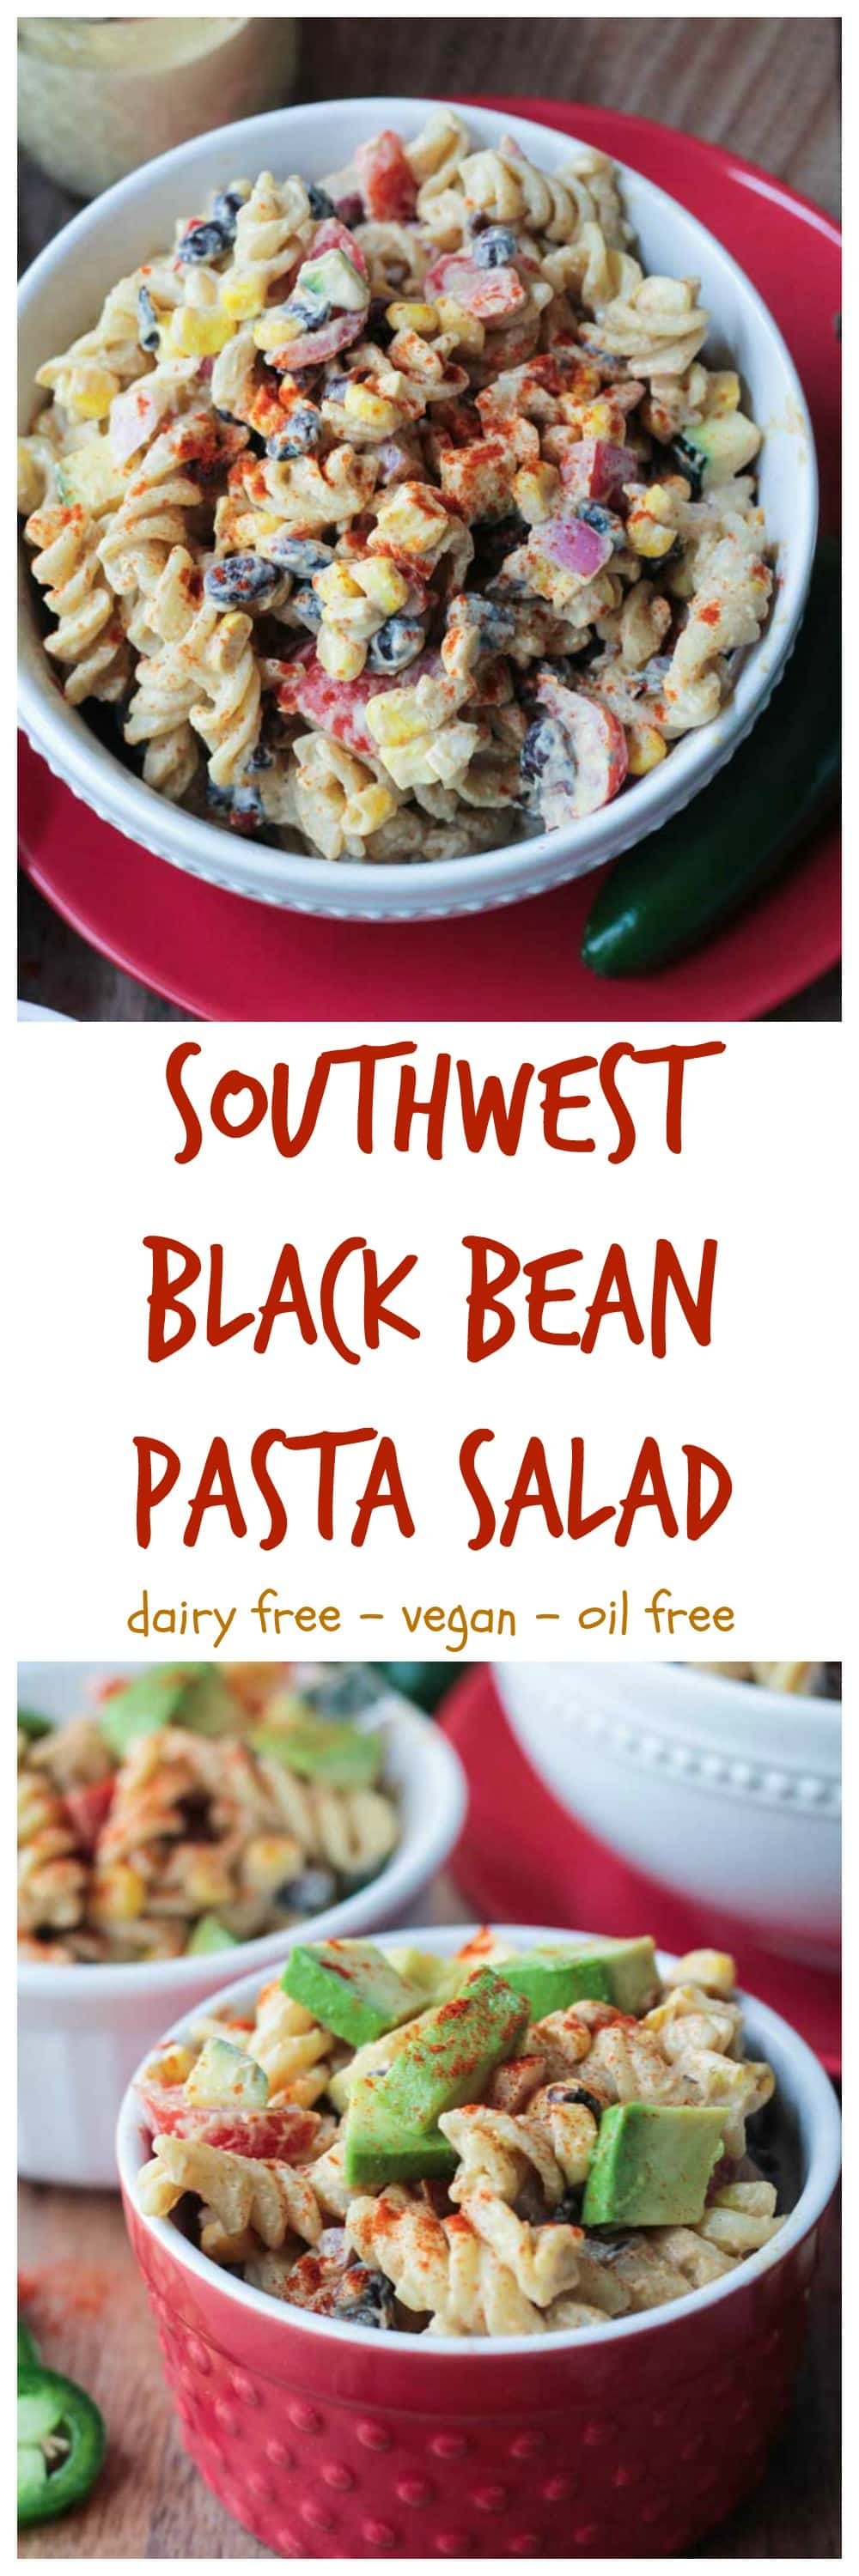 Southwest Black Bean Pasta Salad - vegan | gluten free | dairy free | potluck | feed a crowd | picnic | creamy cumin ranch dressing | meatless | vegetarian